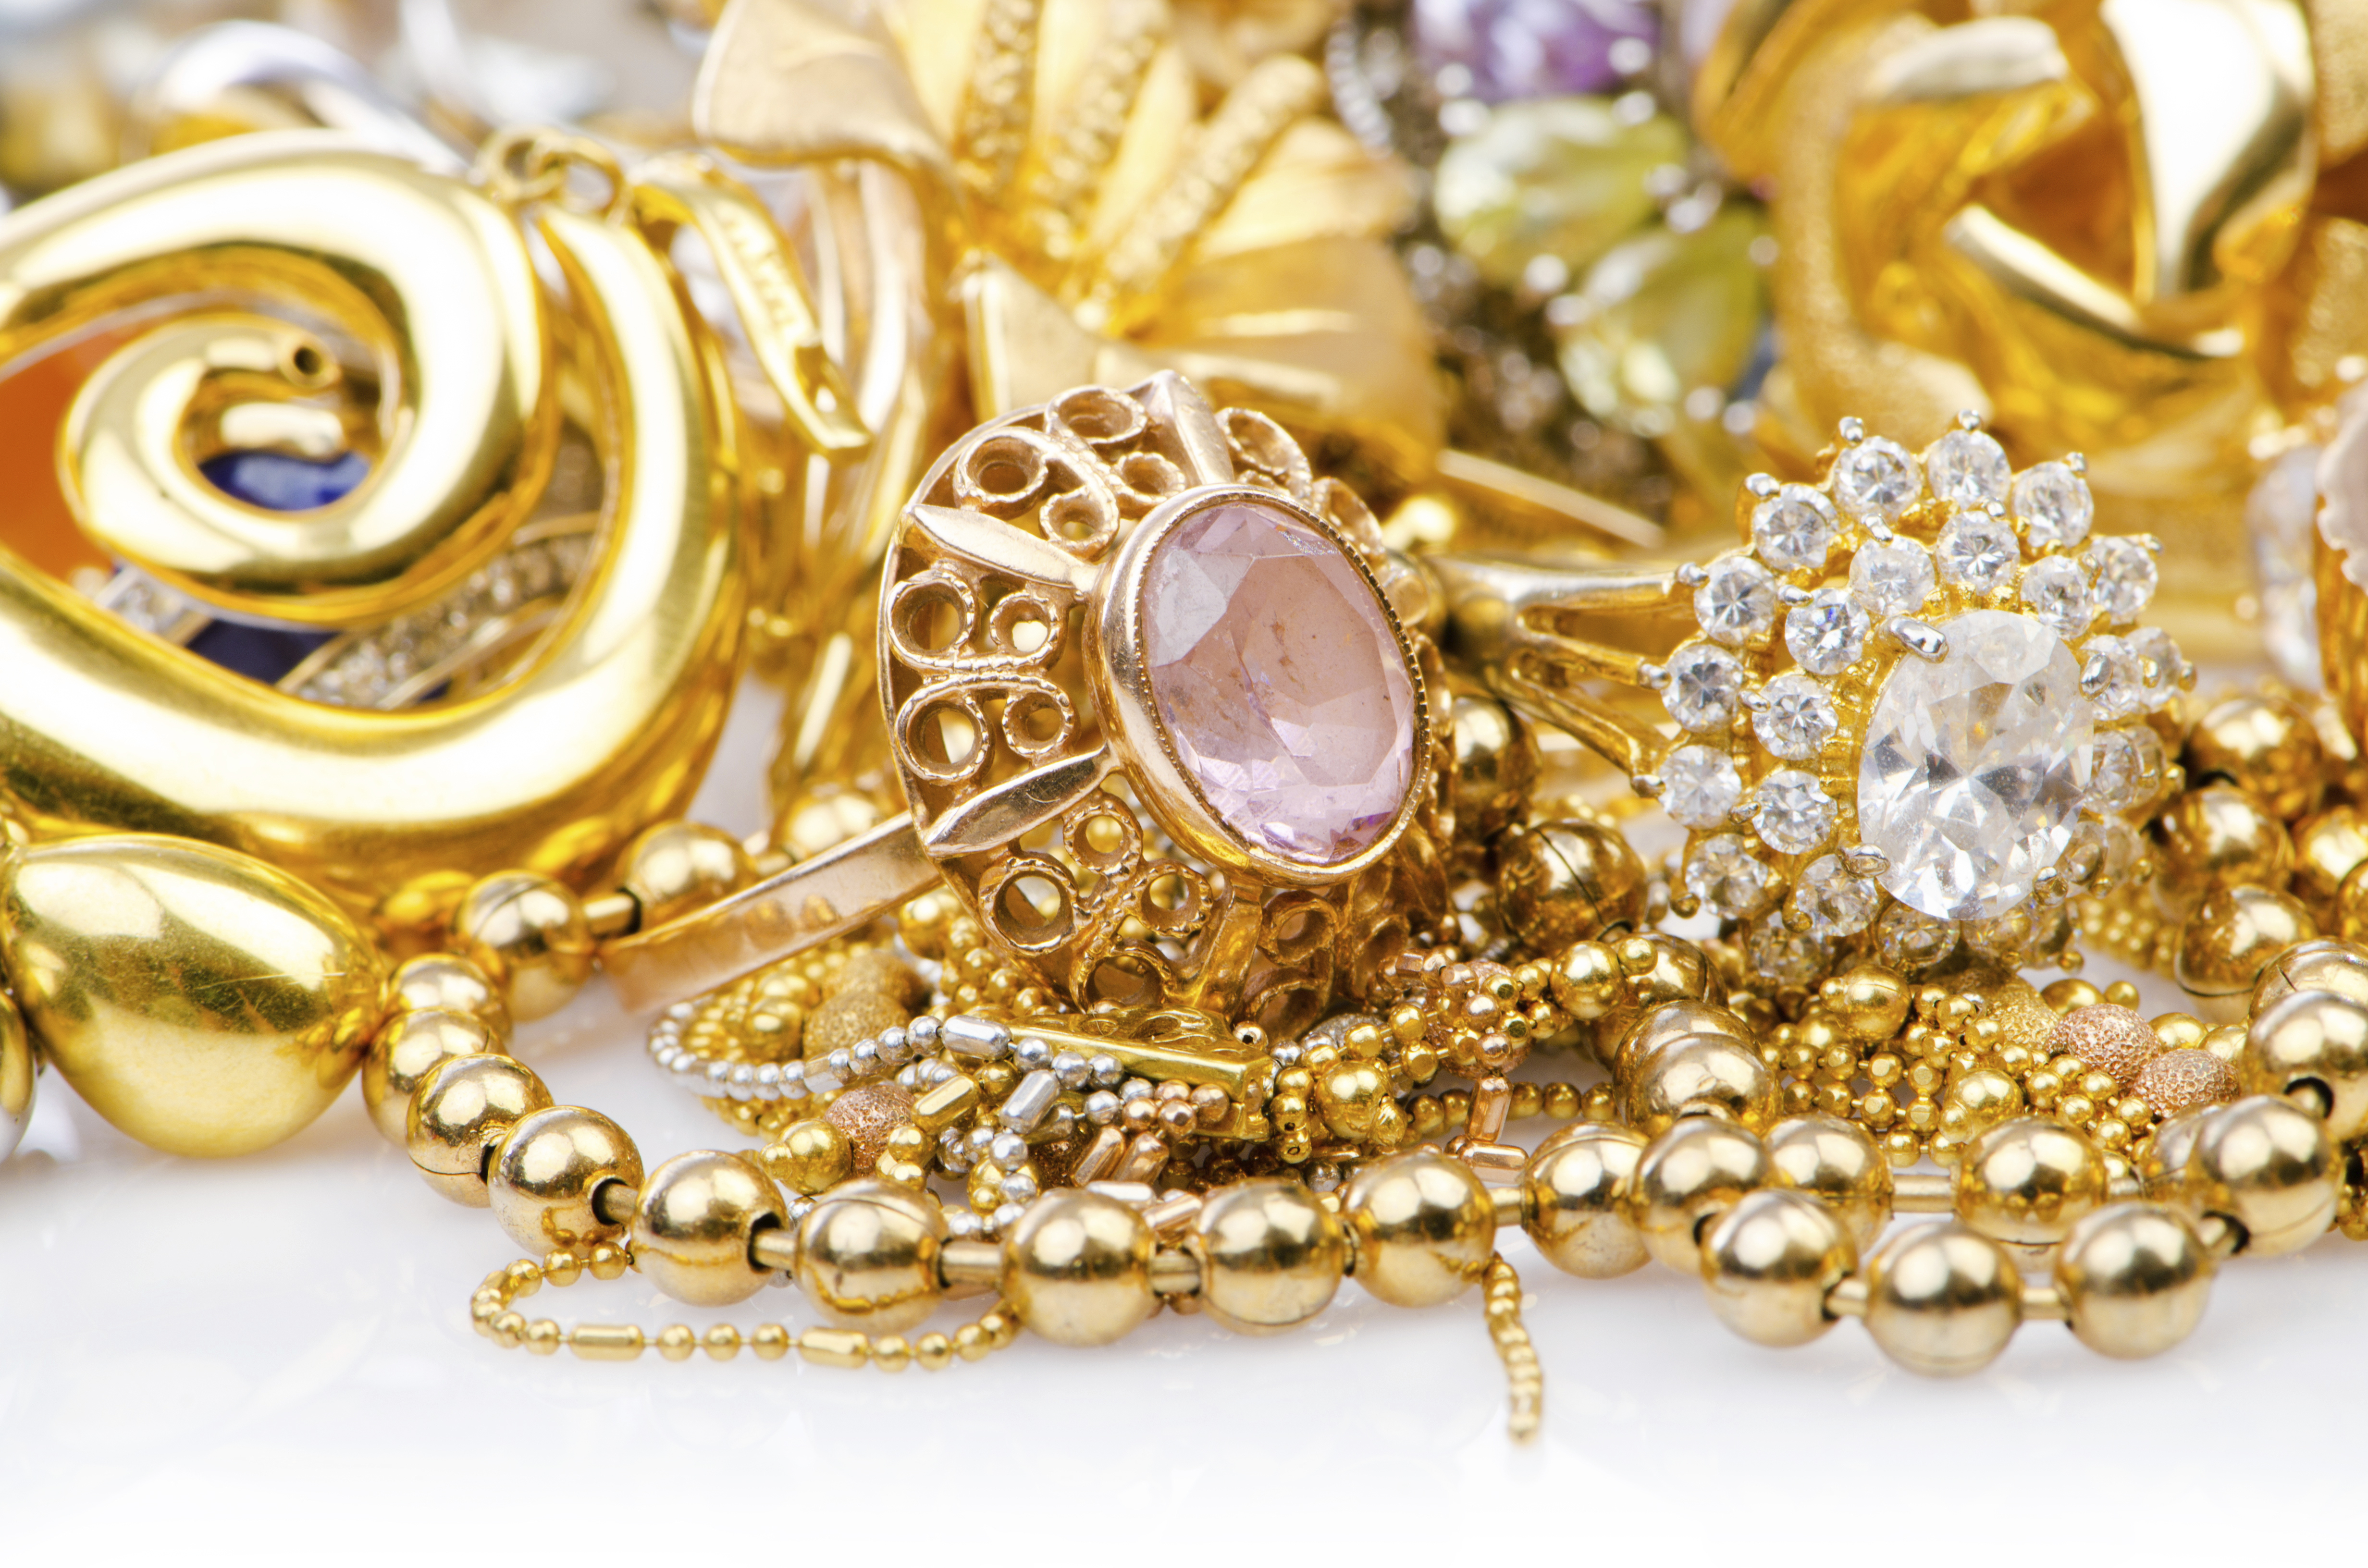 Handcrafted Gold Silver and Platinum Jewelry by Dr Gem